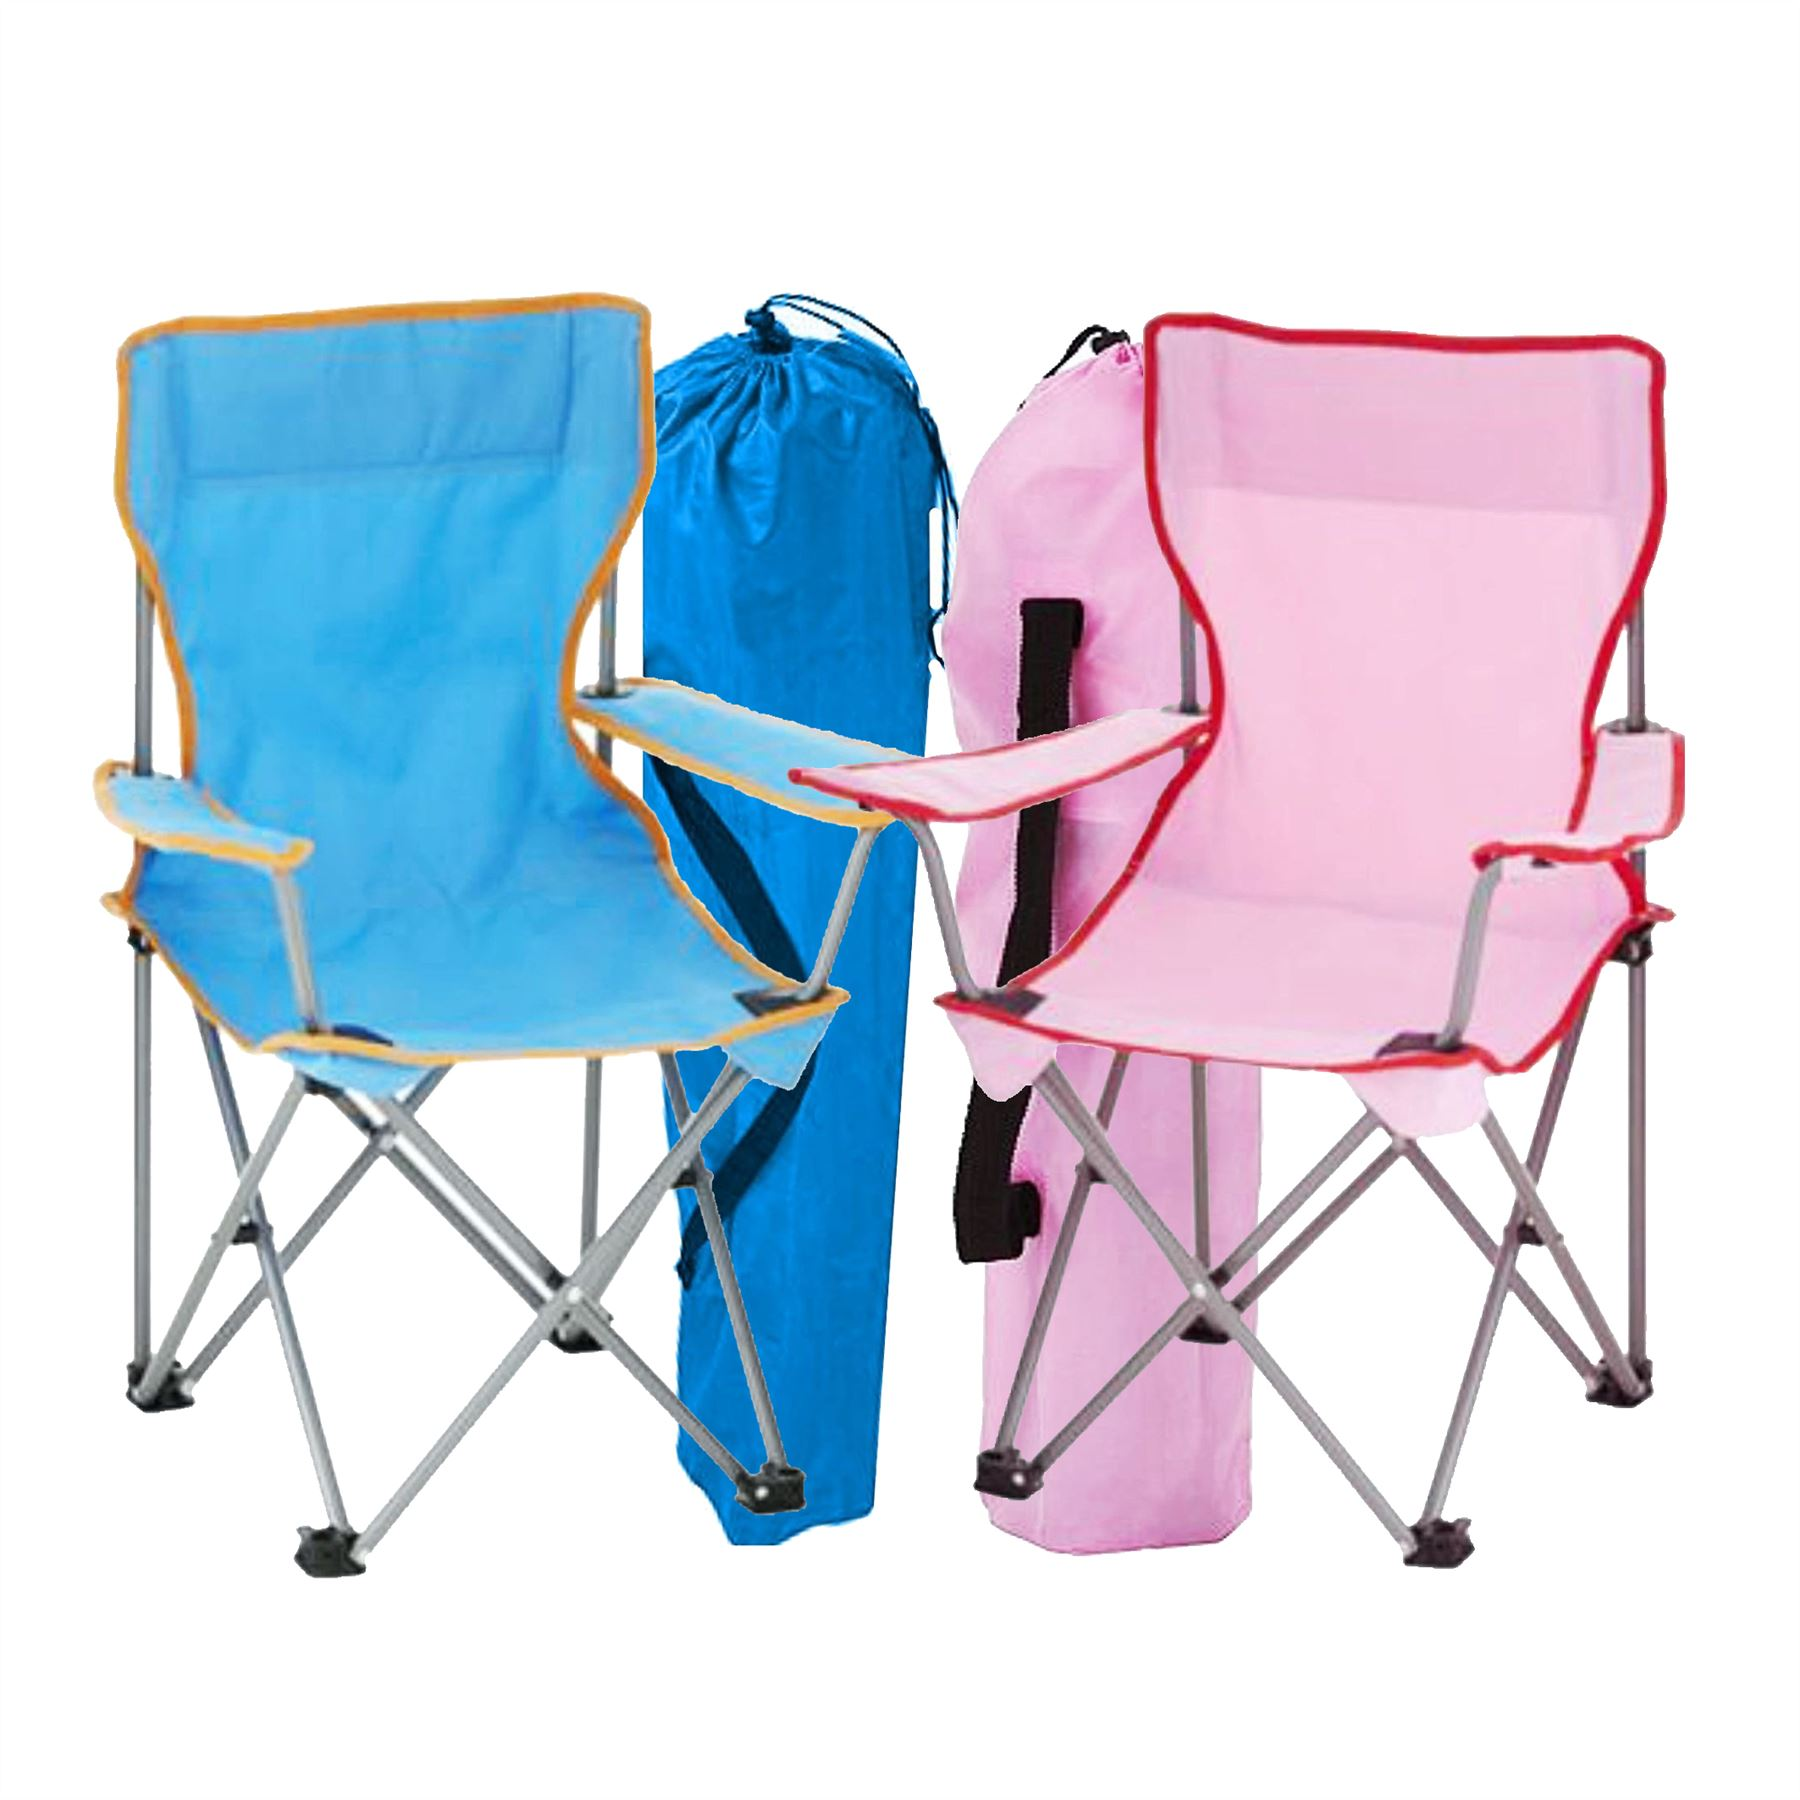 Kid Folding Camp Chairs With Carrying Bag.Details About 2 X Simpa Childrens Folding Camping Chairs With Carry Bag